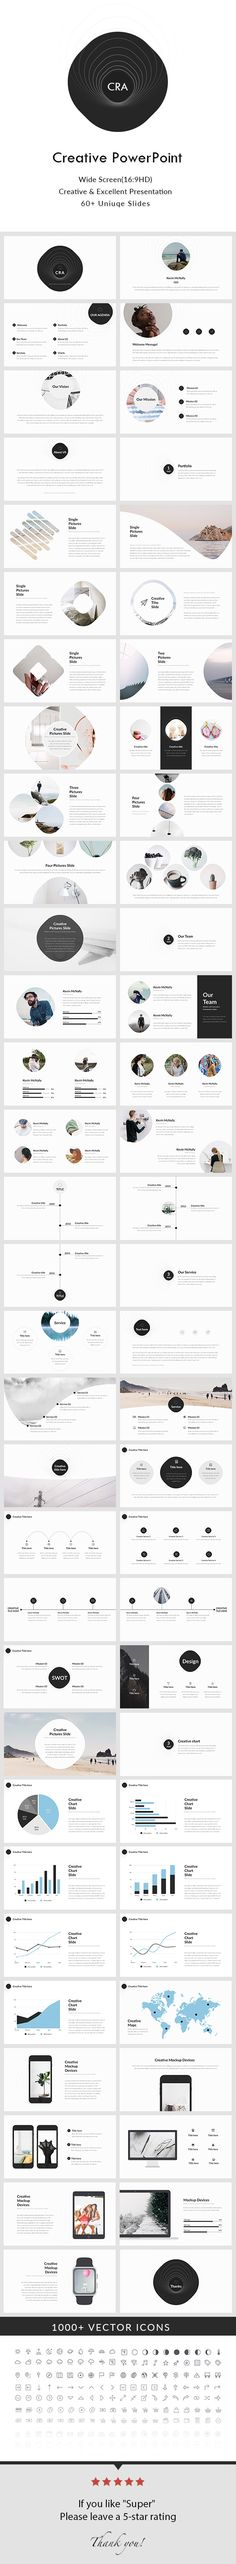 Telelista business strategy powerpoint business powerpoint creative powerpoint presentation template powerpoint ppt chart modern download flashek Images